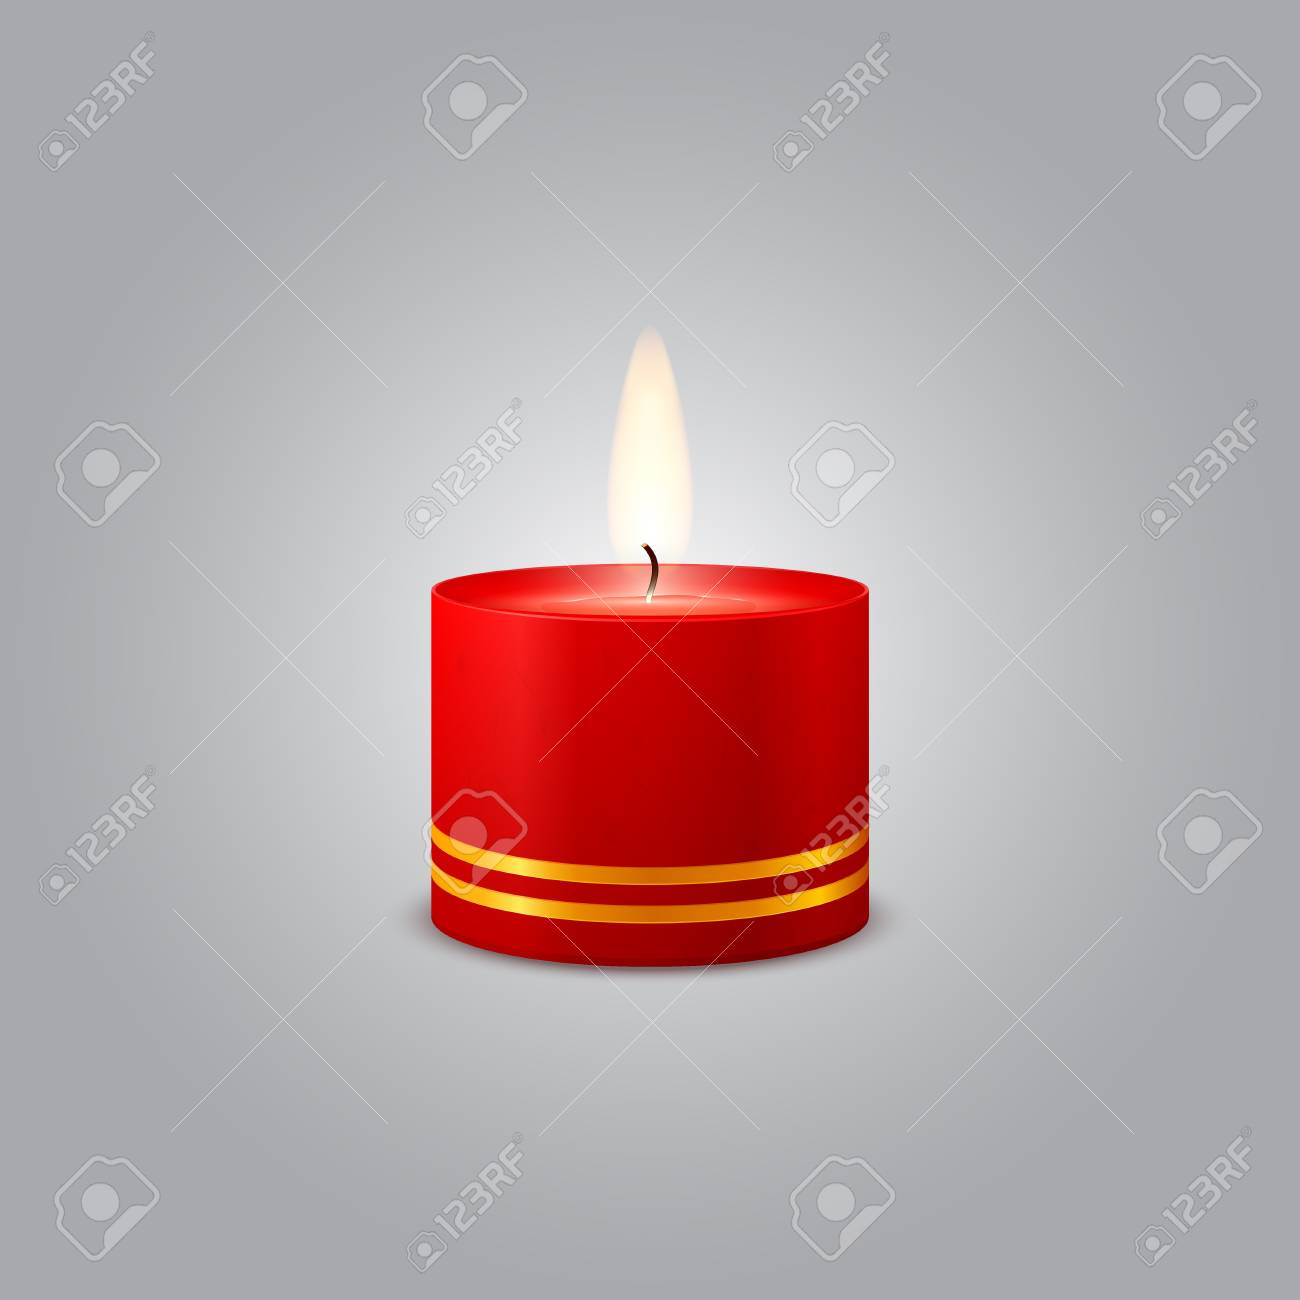 Red Christmas Candle Stock Vector - 16956630